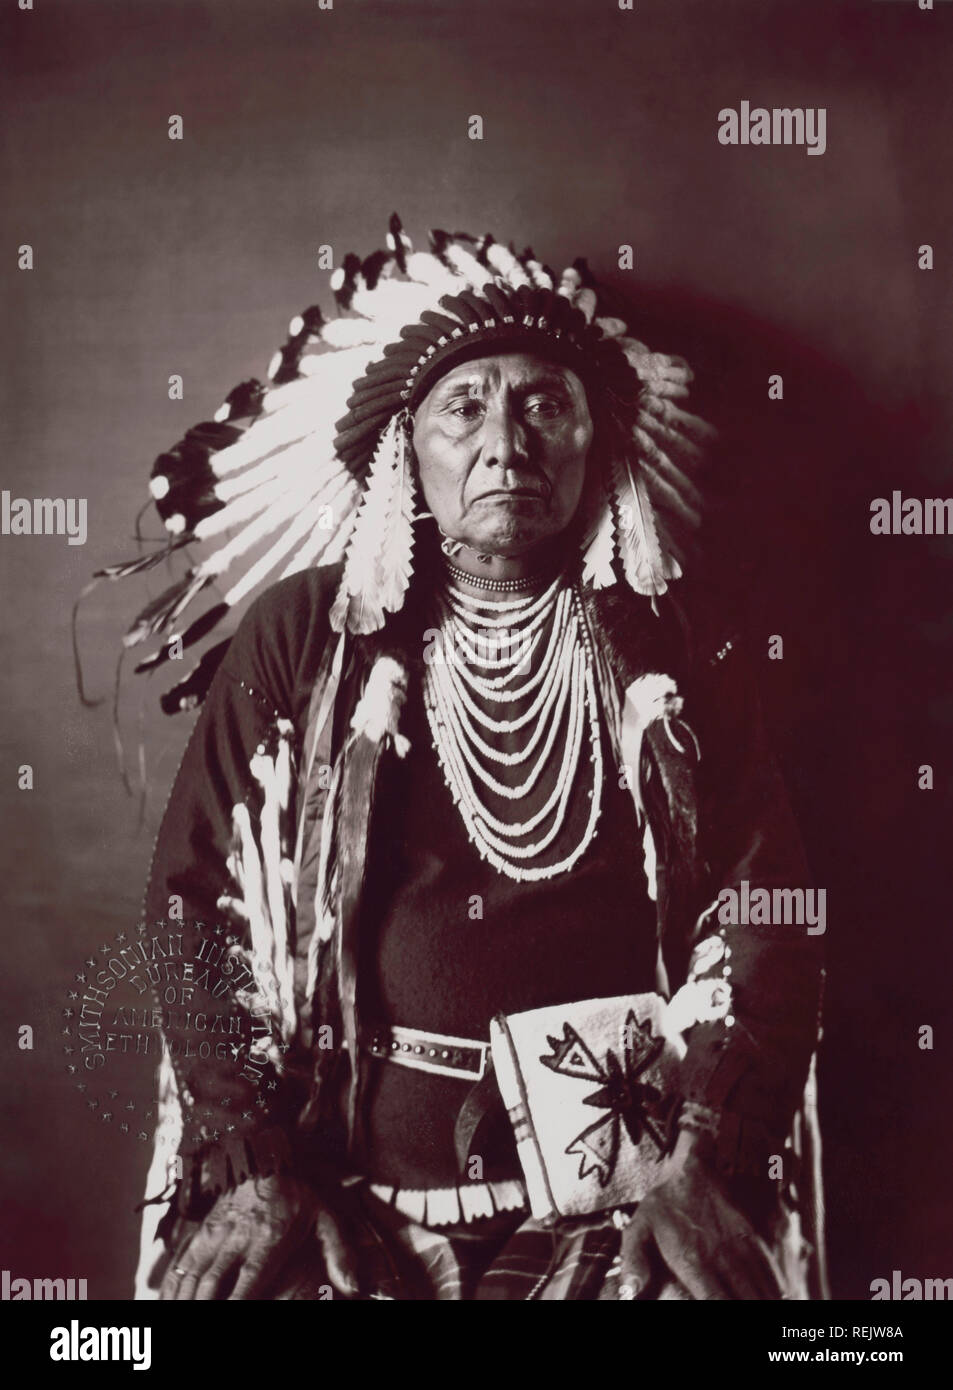 Hin-mah-too-yah-lat-kekt, also known as Chief Joseph, Nez Perce Chief, Seated Portrait in Traditional Dress, 1900 - Stock Image